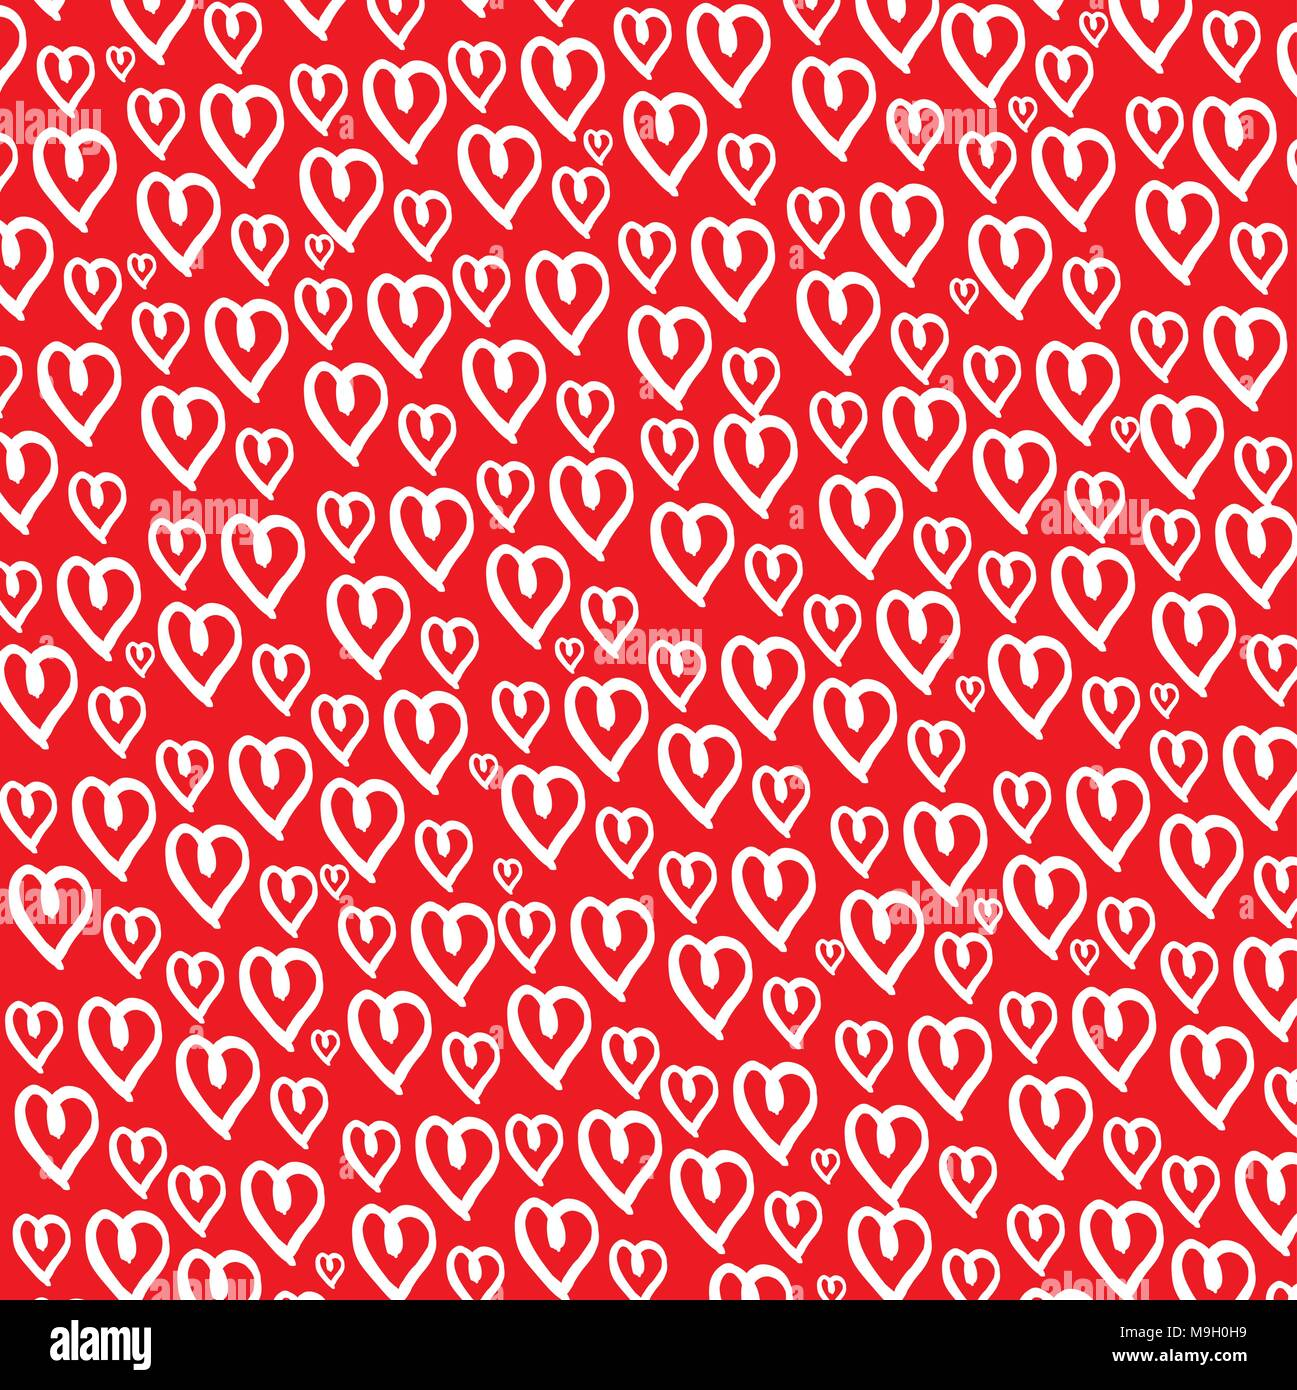 Red Background White Heart Patterned Wallpaper Stock Vector